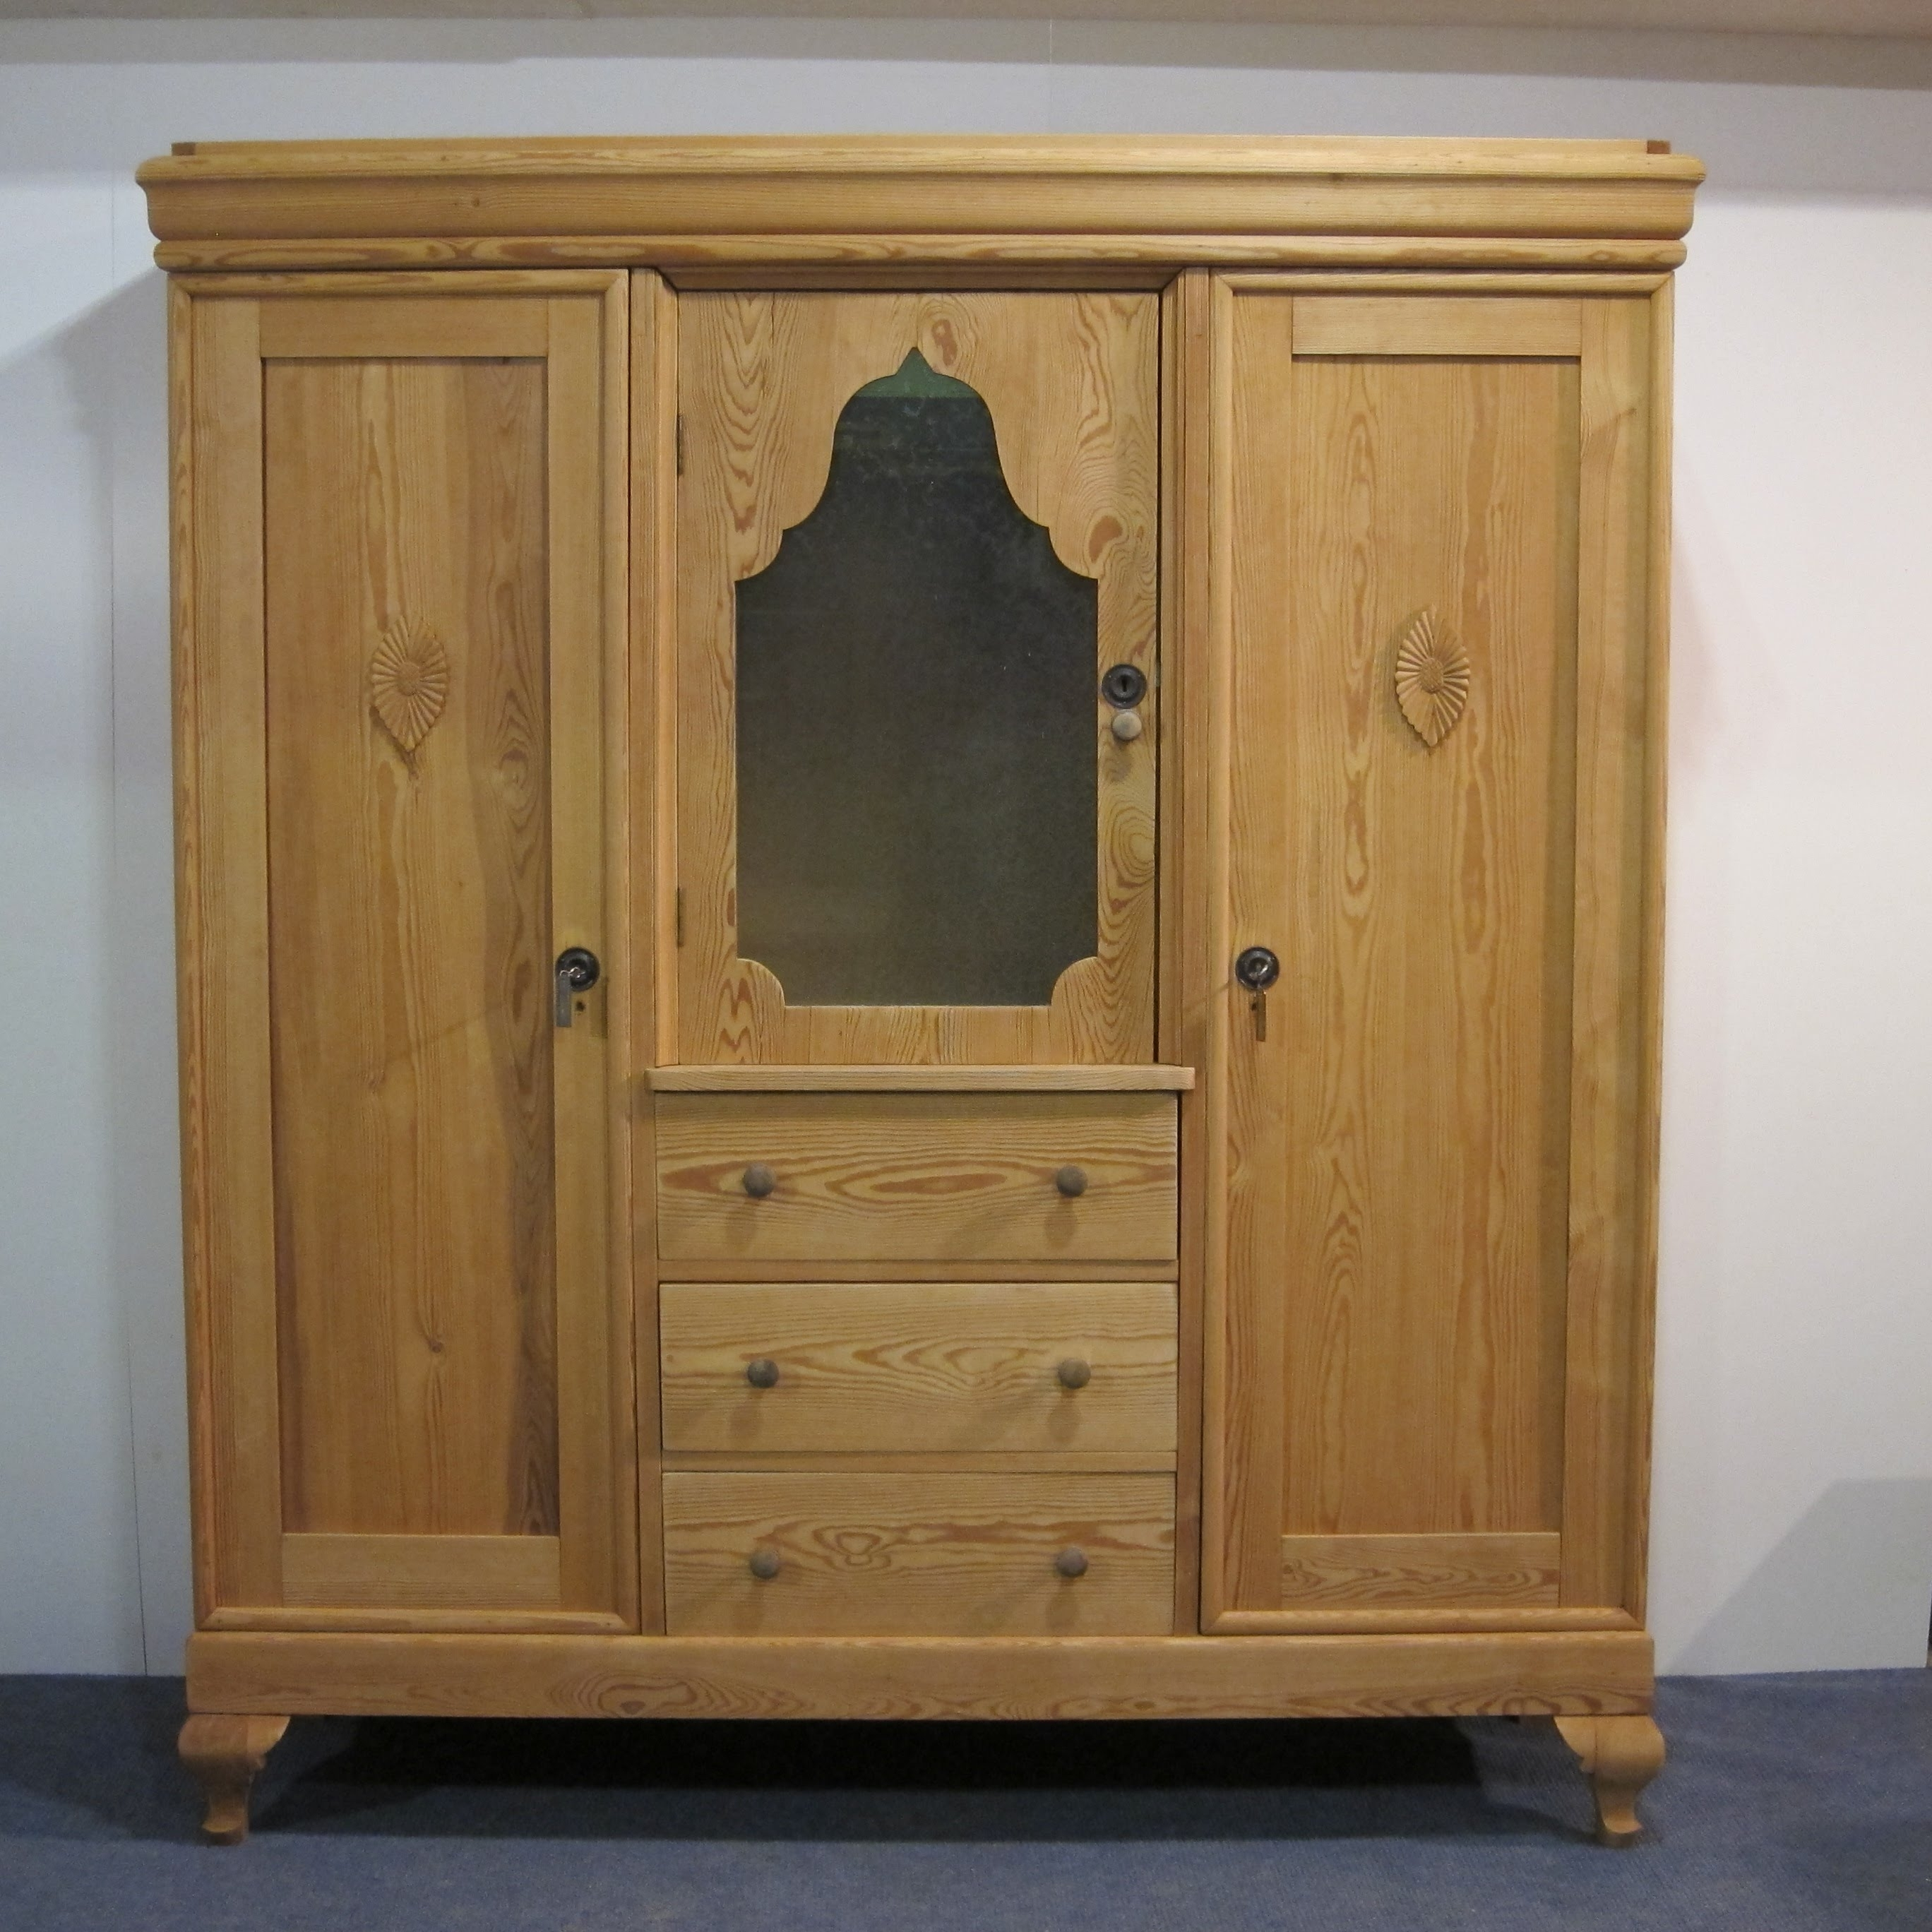 Trendy Pine Wardrobes With Drawers Intended For Large Antique Pine Wardrobe Unit With Drawers – Pinefinders Old (View 11 of 15)